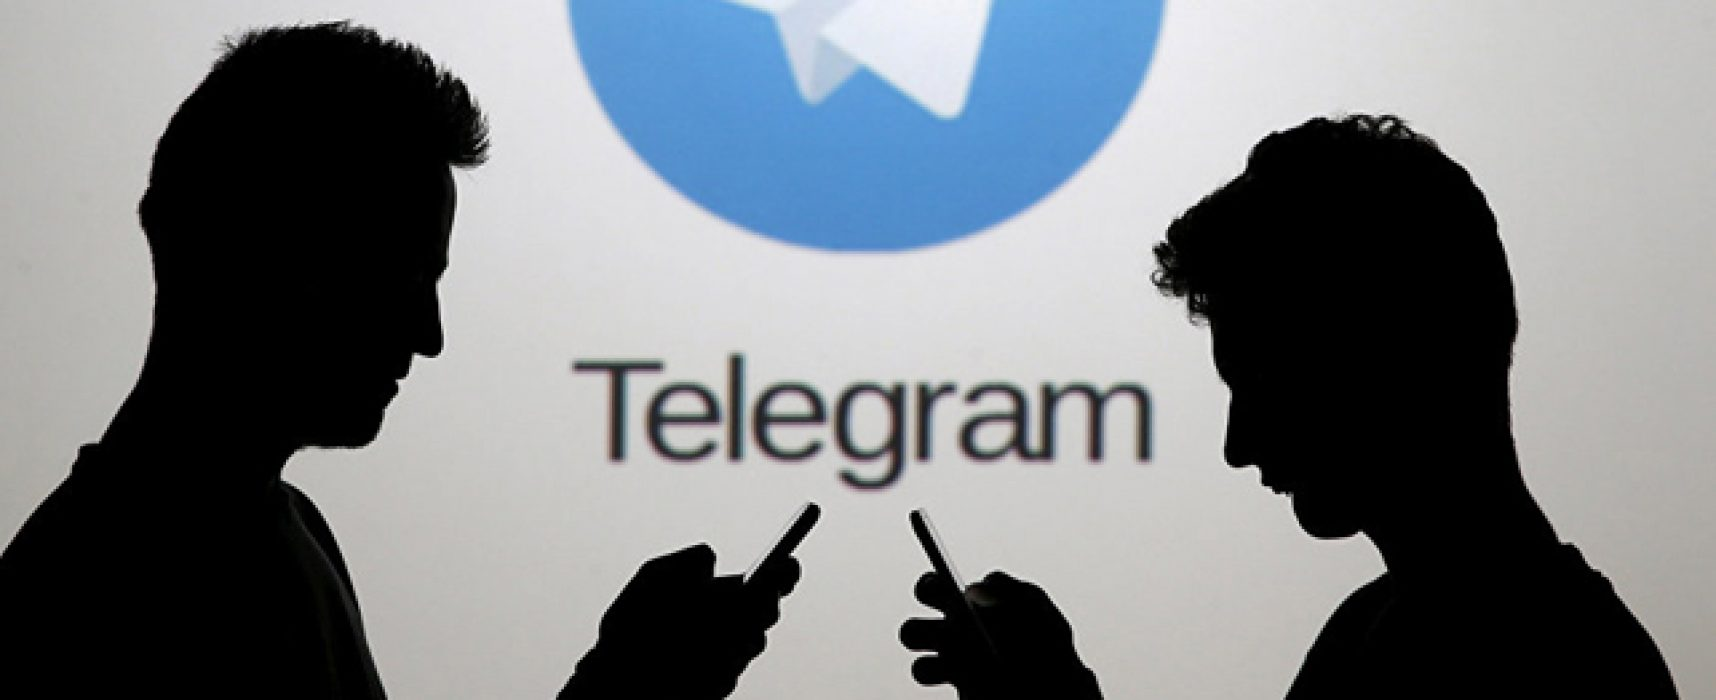 How much is a gram of Telegram, or why you should not get hooked on this messenger